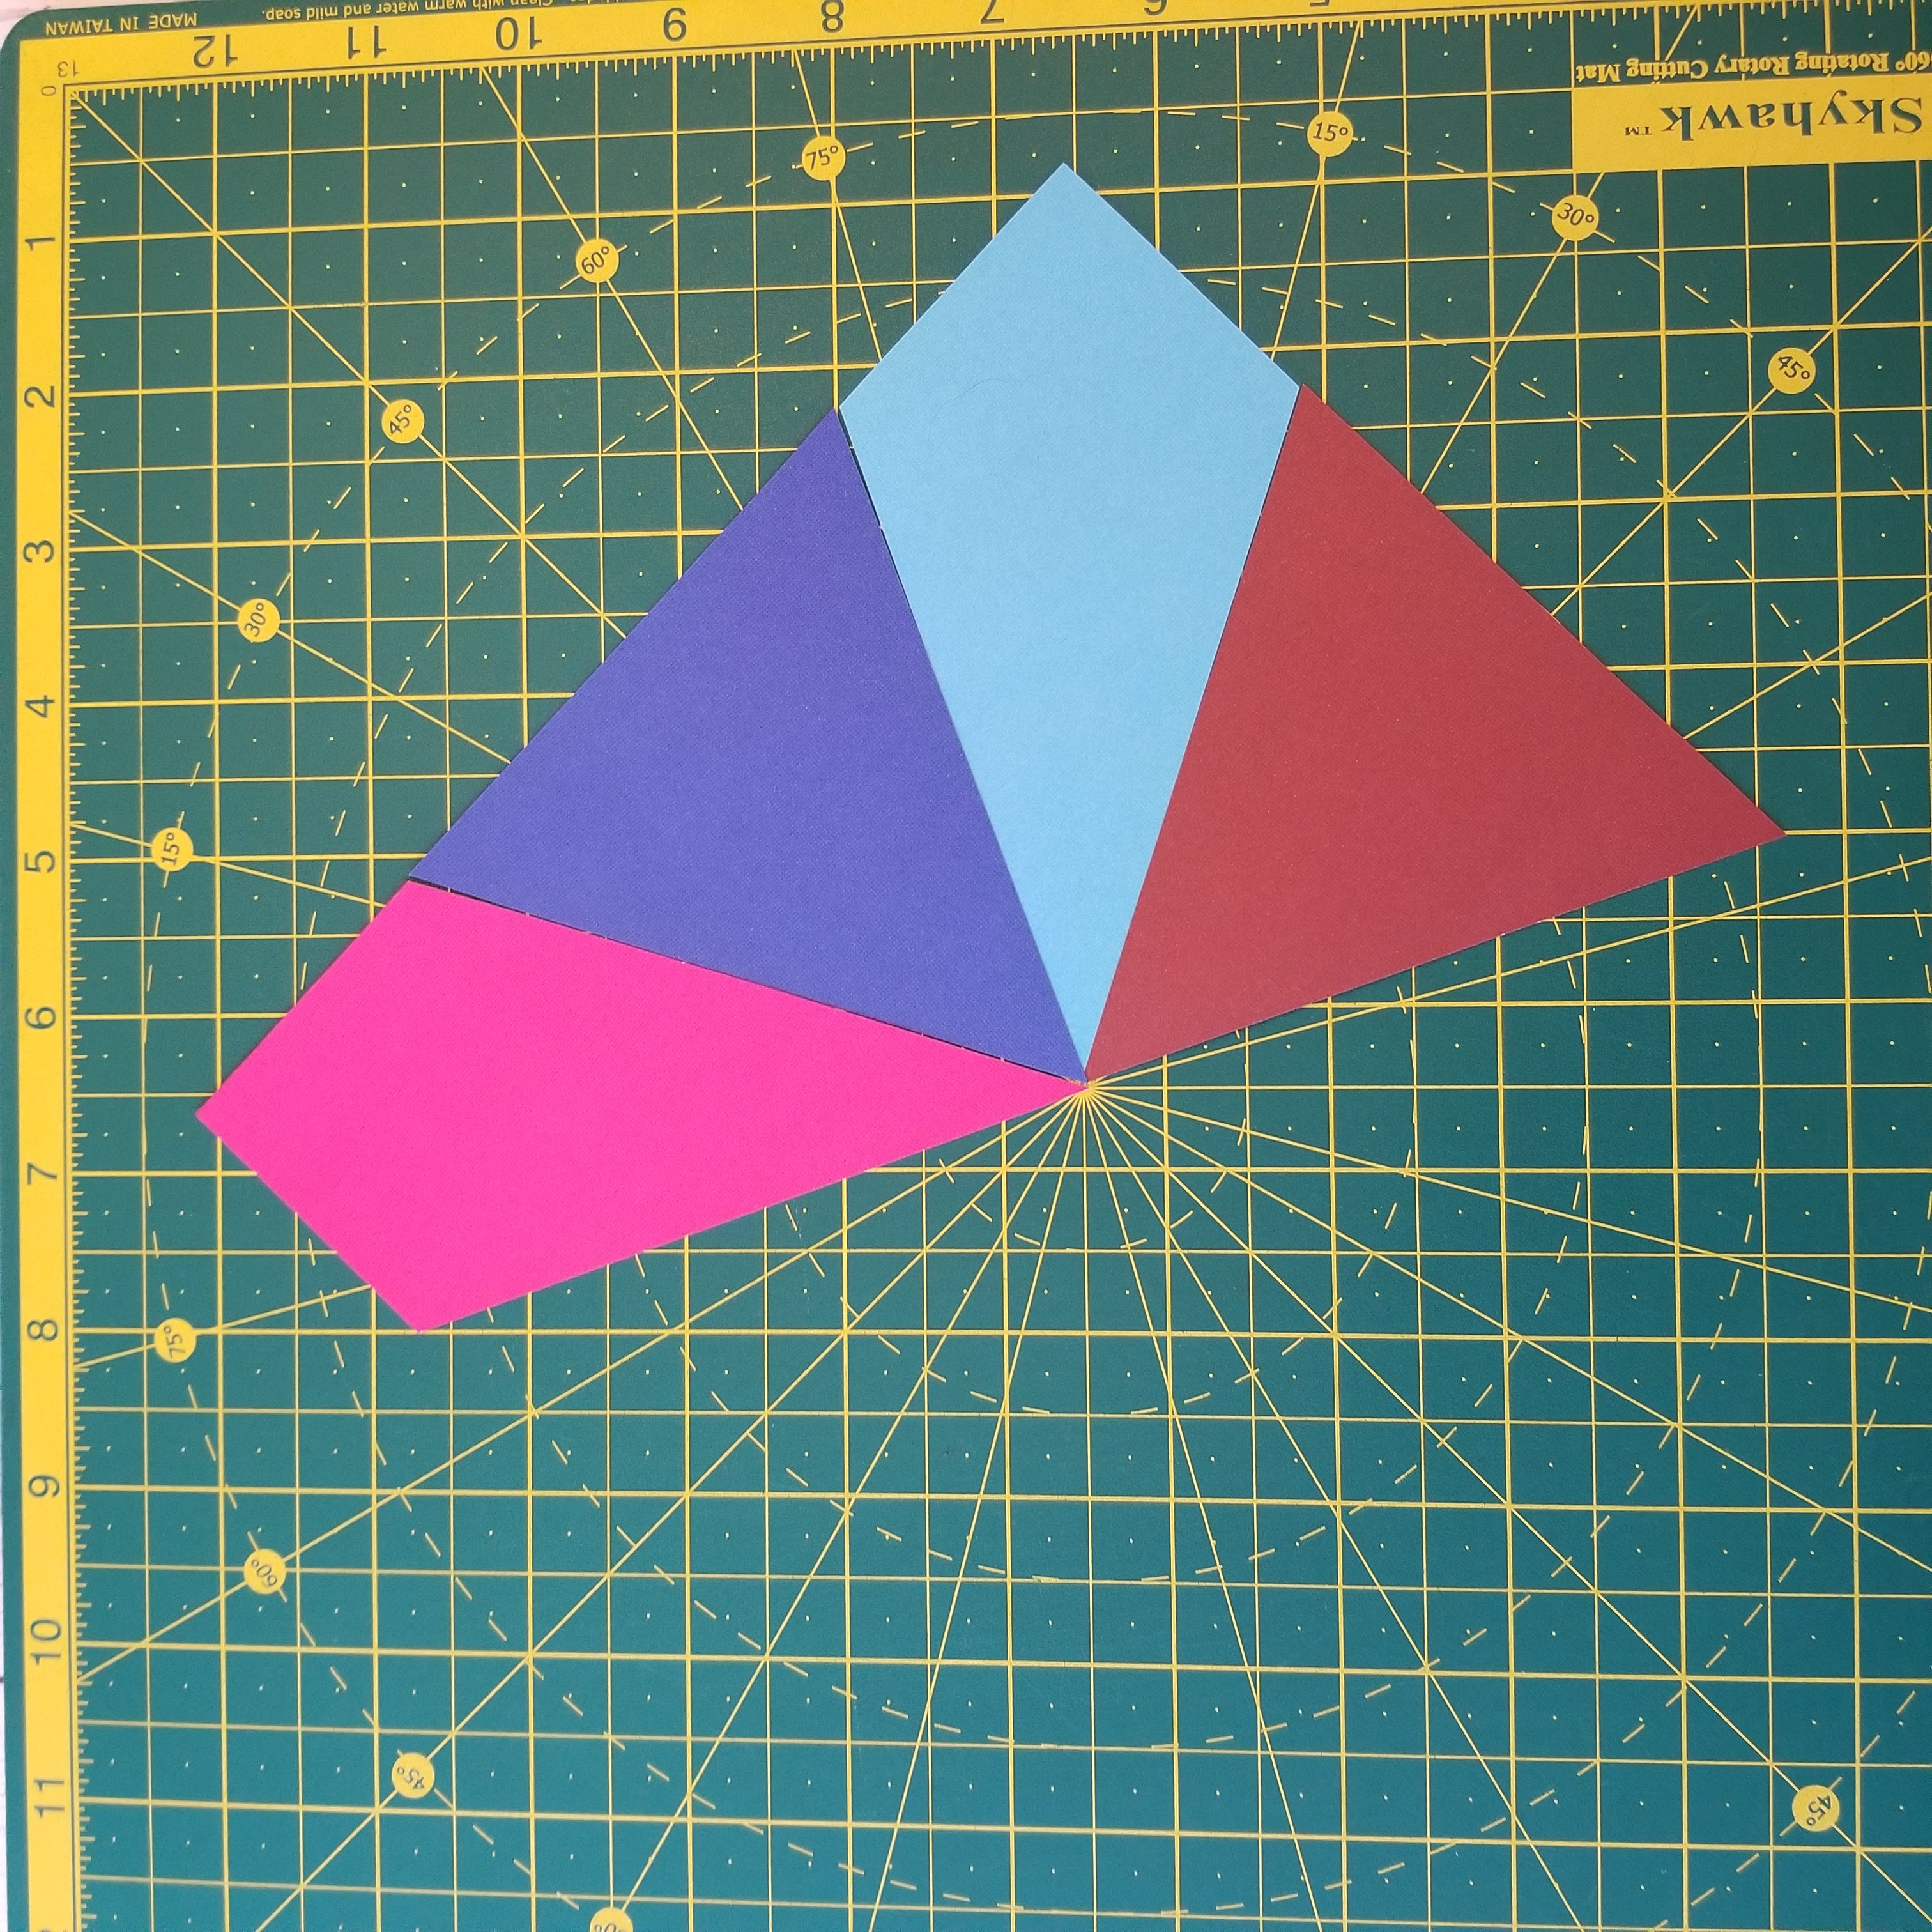 Half a quilt block made up of kite shapes and triangles on self healing cutting mat